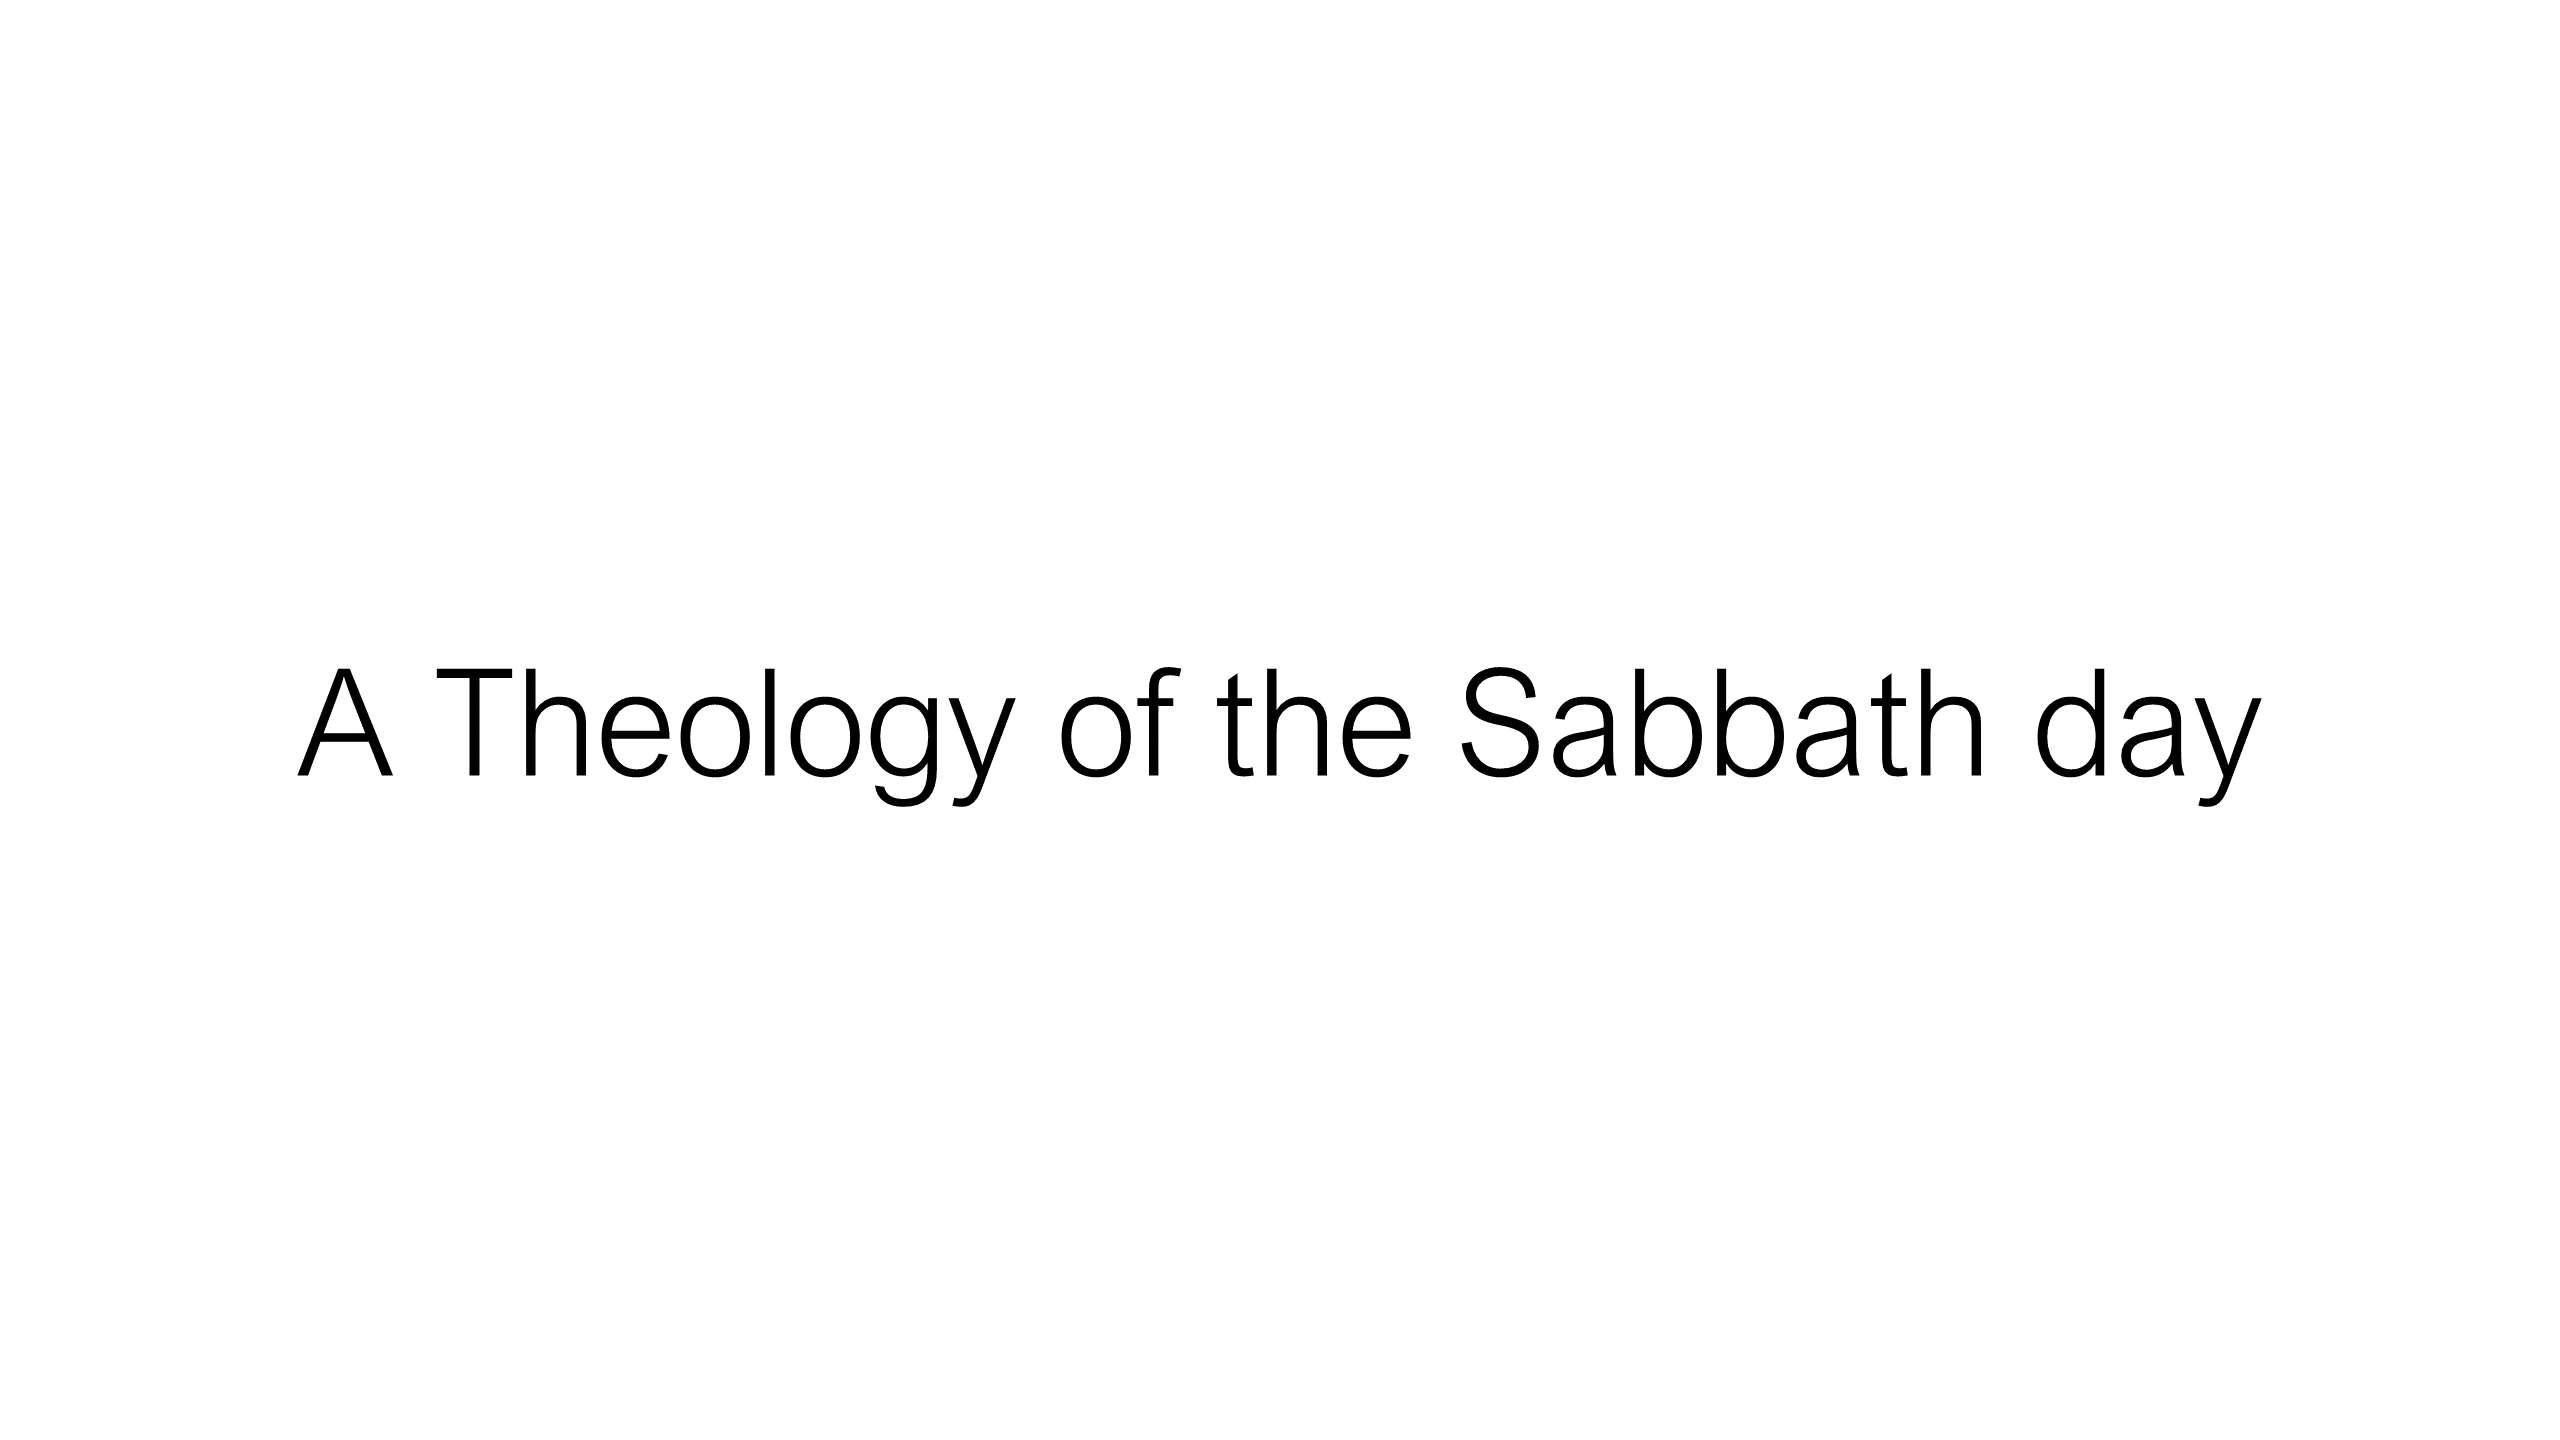 HFG-10 - Sabbath Bondage & Knowing The Joys Of Christ's Rest Of This Side Of The Cross (5)